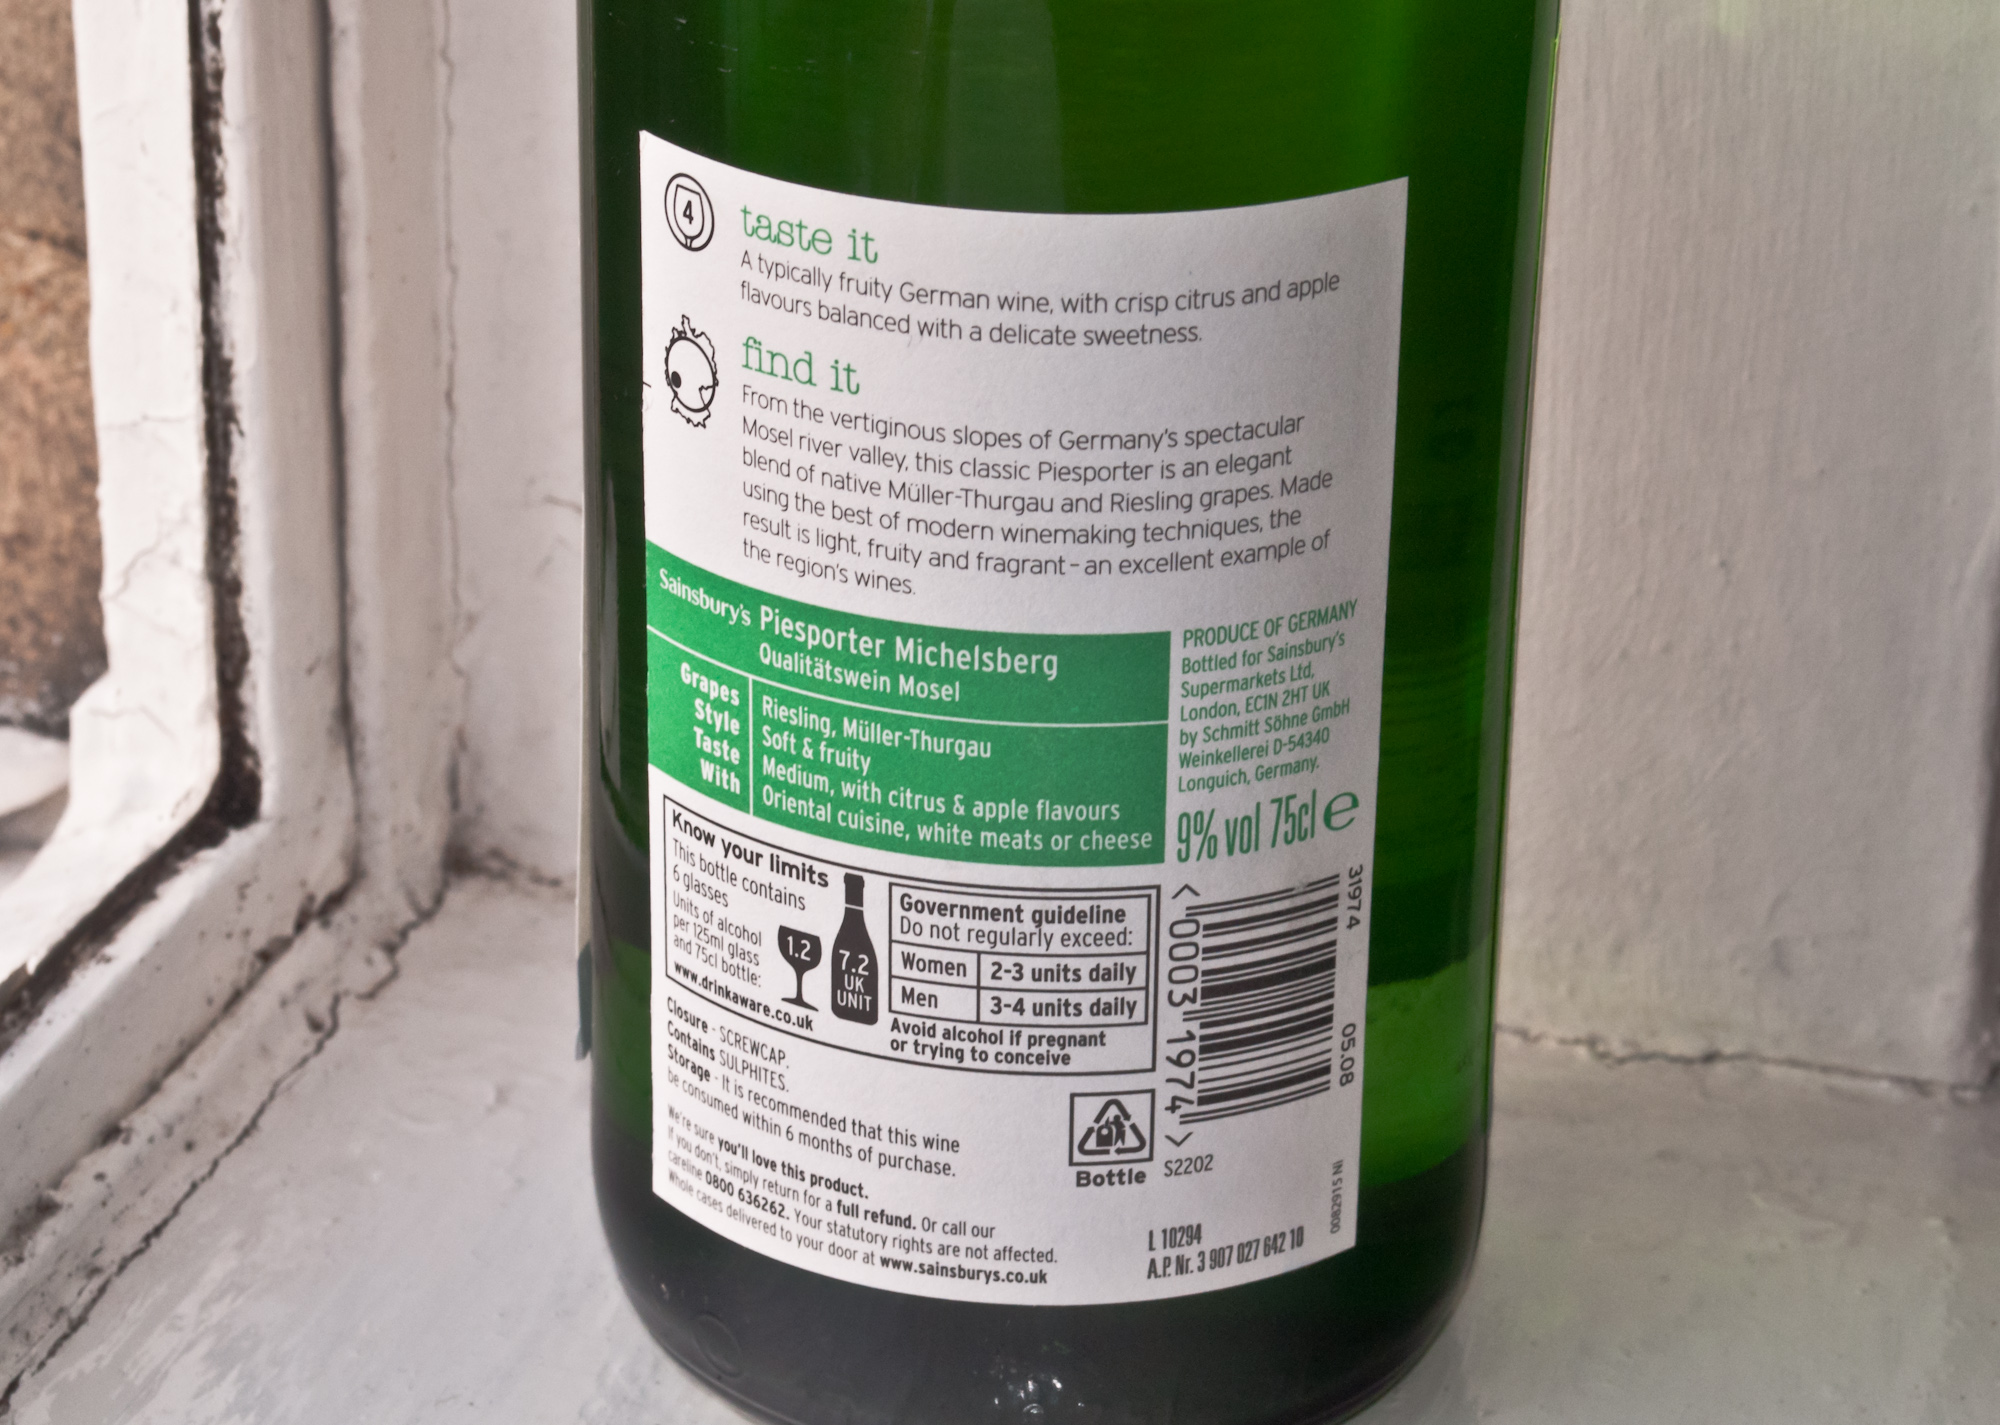 back label of the Piesporter suggests to drink within 6 months of purchase